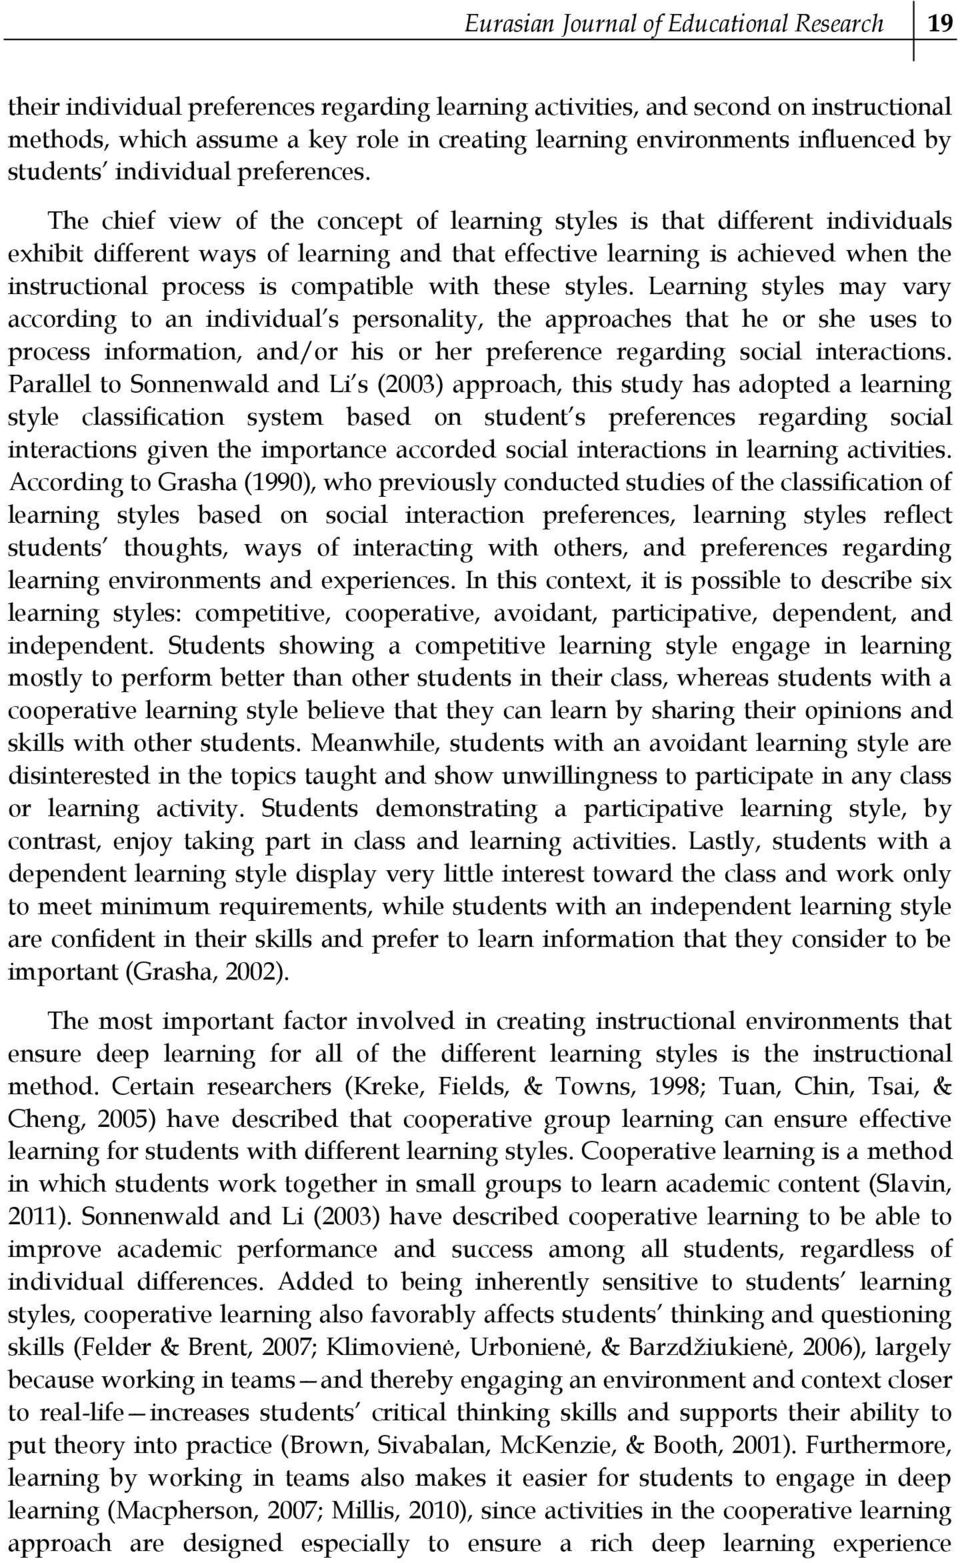 The chief view of the concept of learning styles is that different individuals exhibit different ways of learning and that effective learning is achieved when the instructional process is compatible